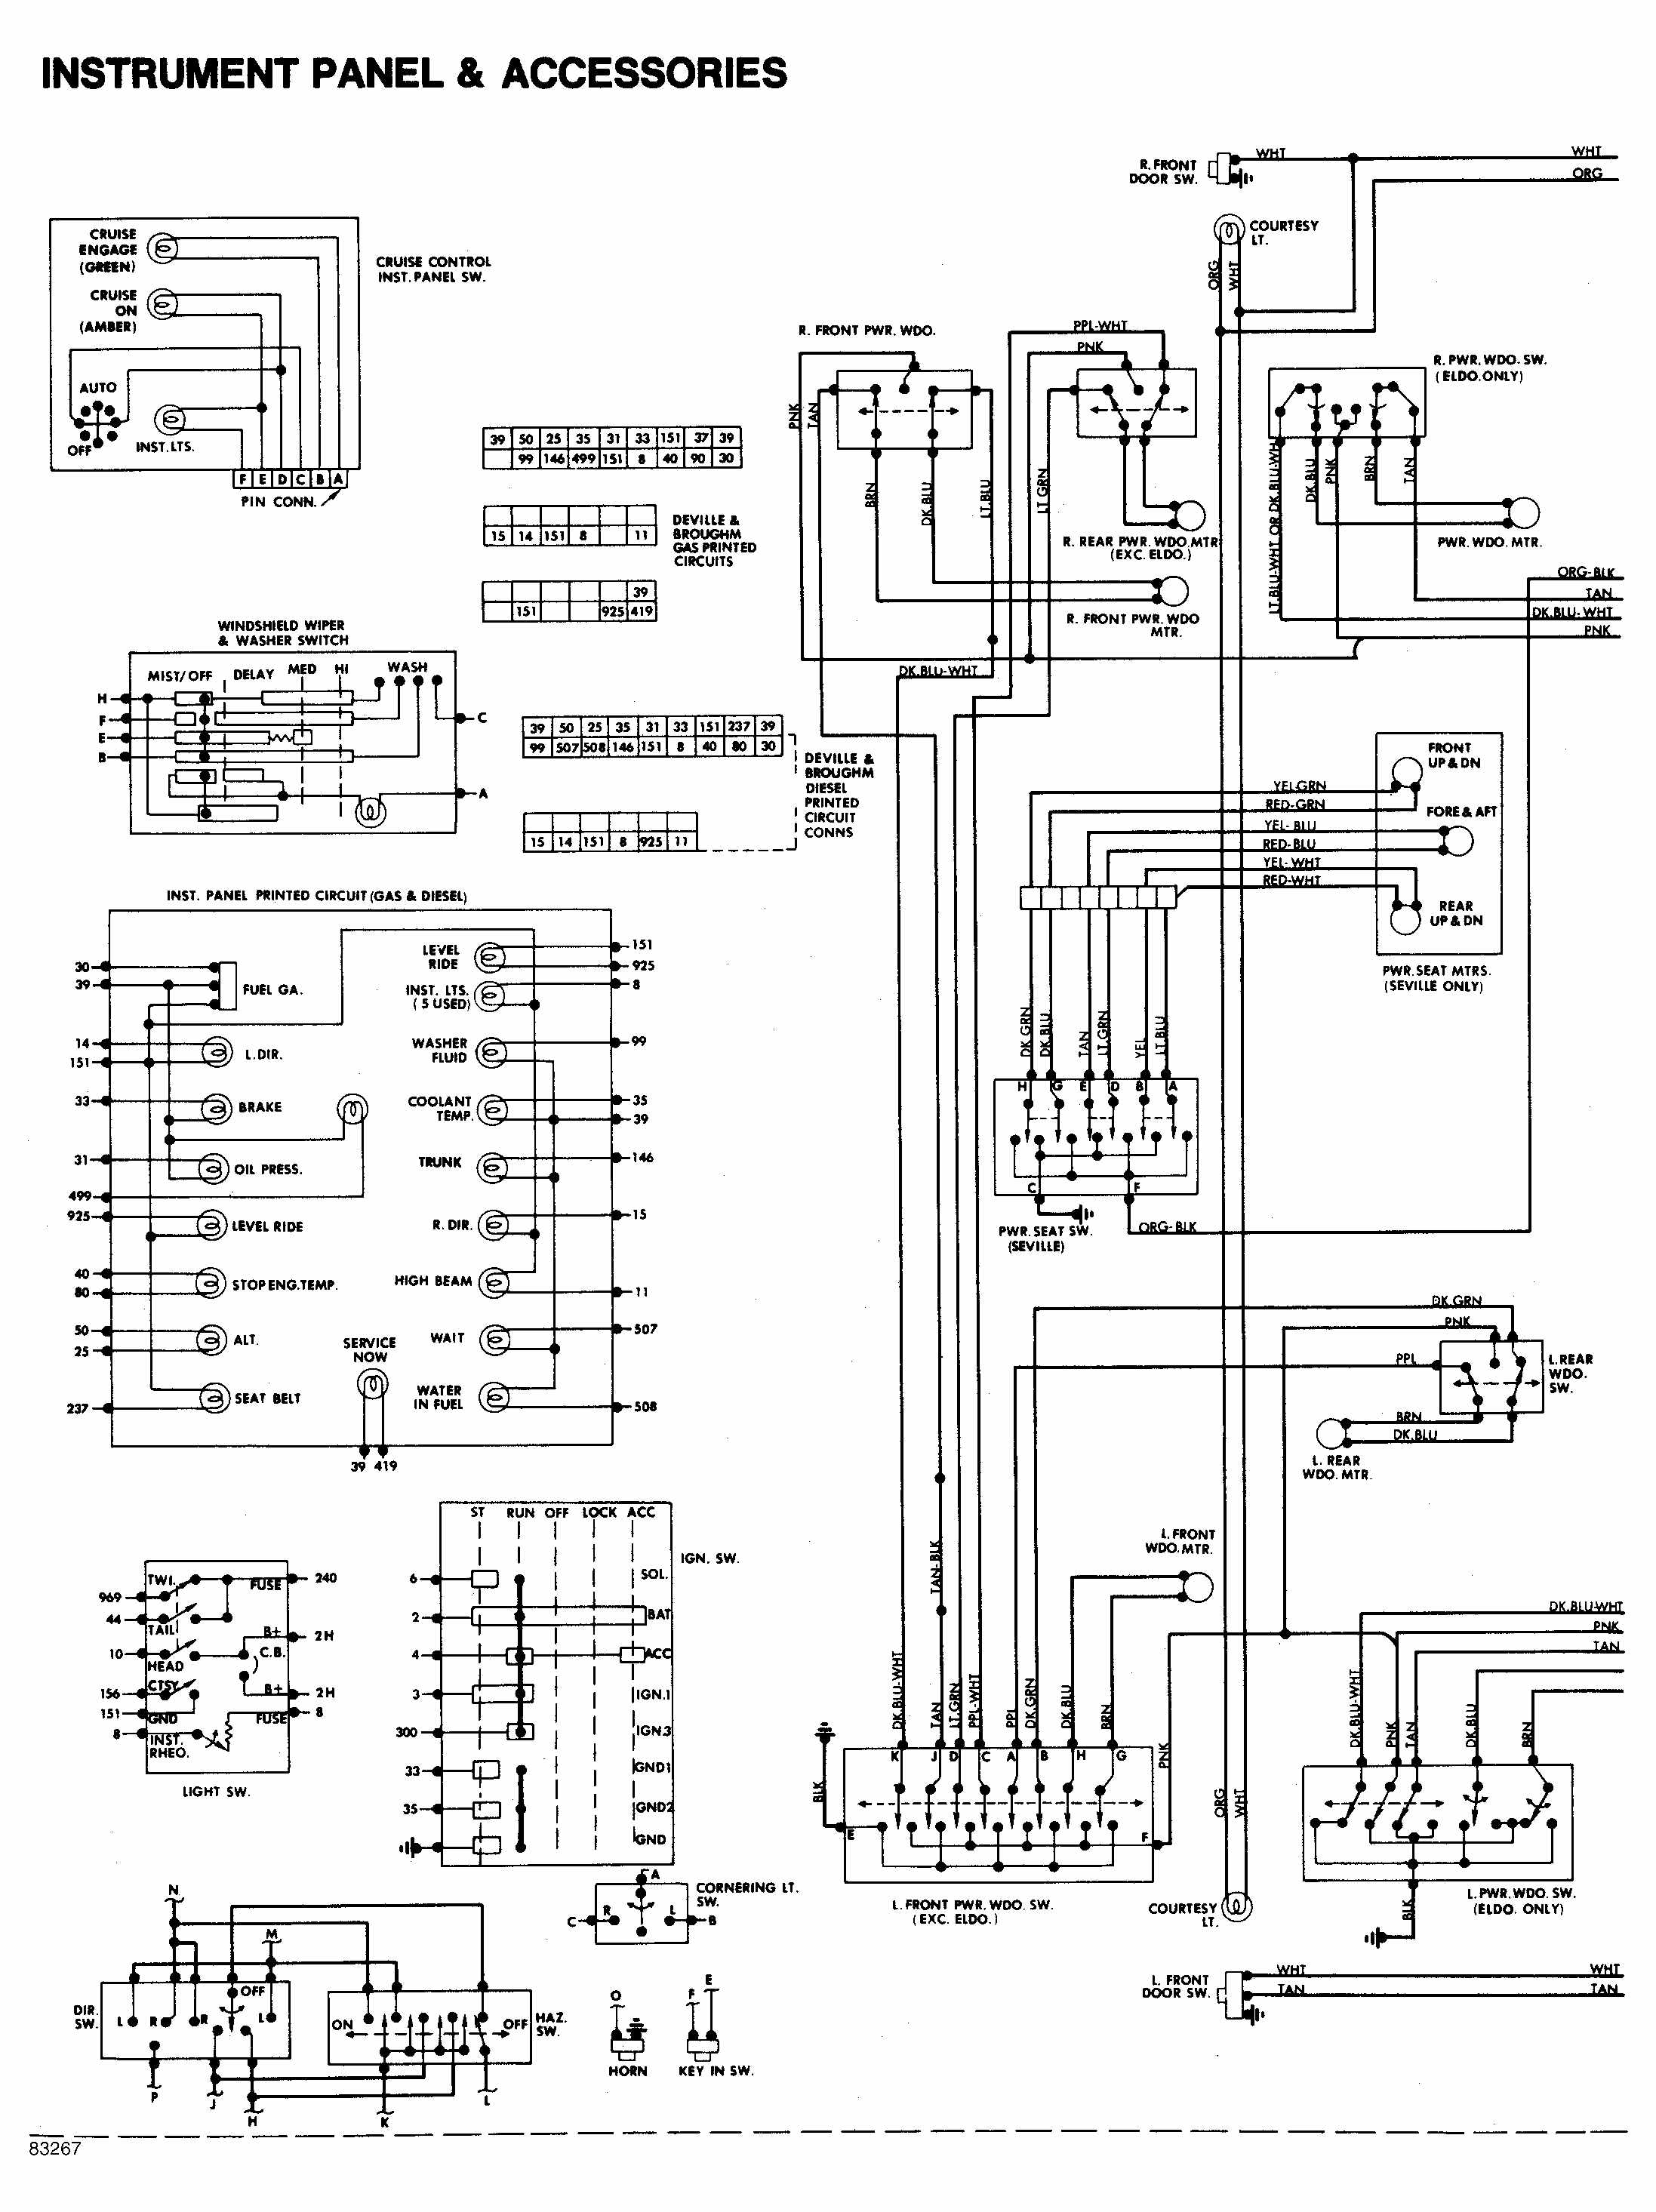 Wiring Diagram 2001 Cadillac Deville - Wiring Diagram Operation producer -  producer.cantierisanrocco.itcantierisanrocco.it